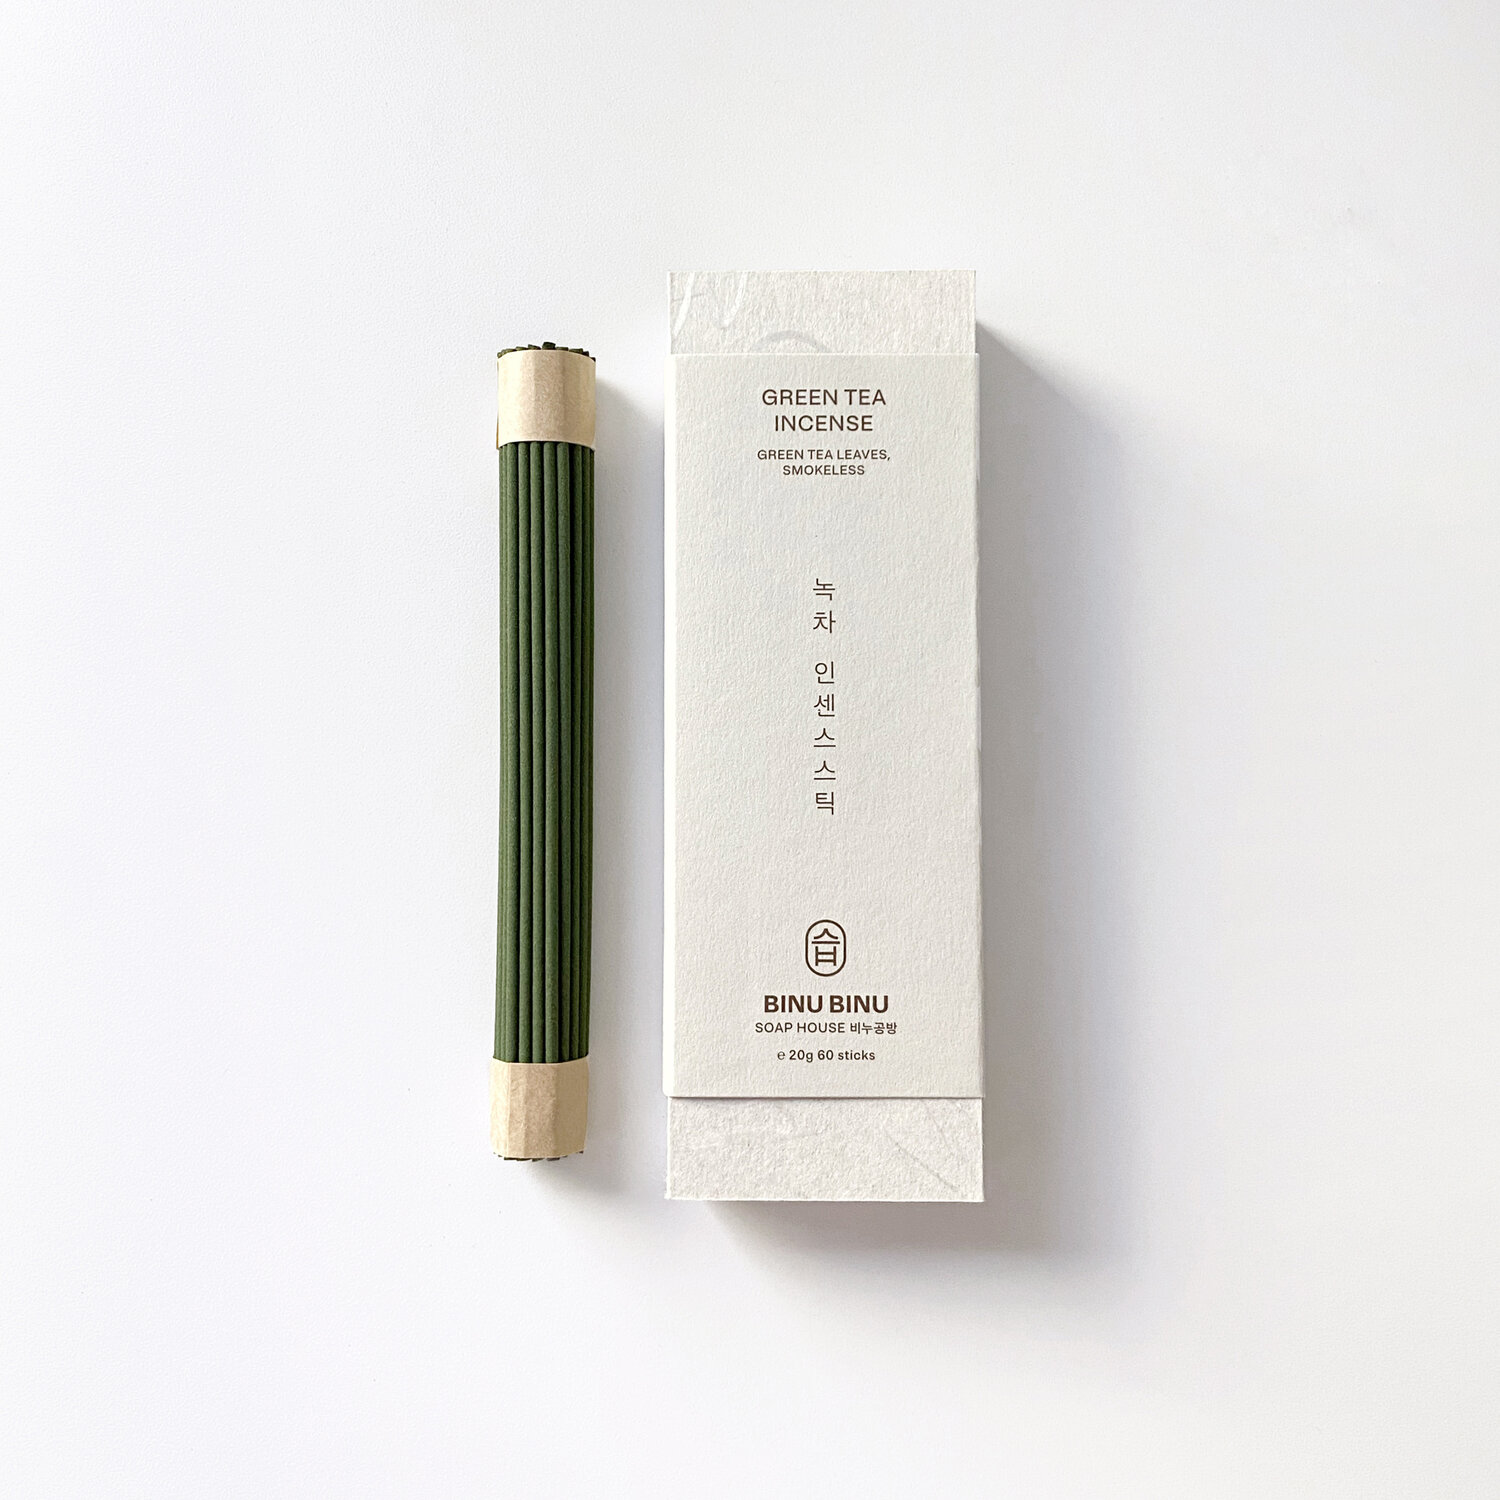 Binu Binu Green tea incense